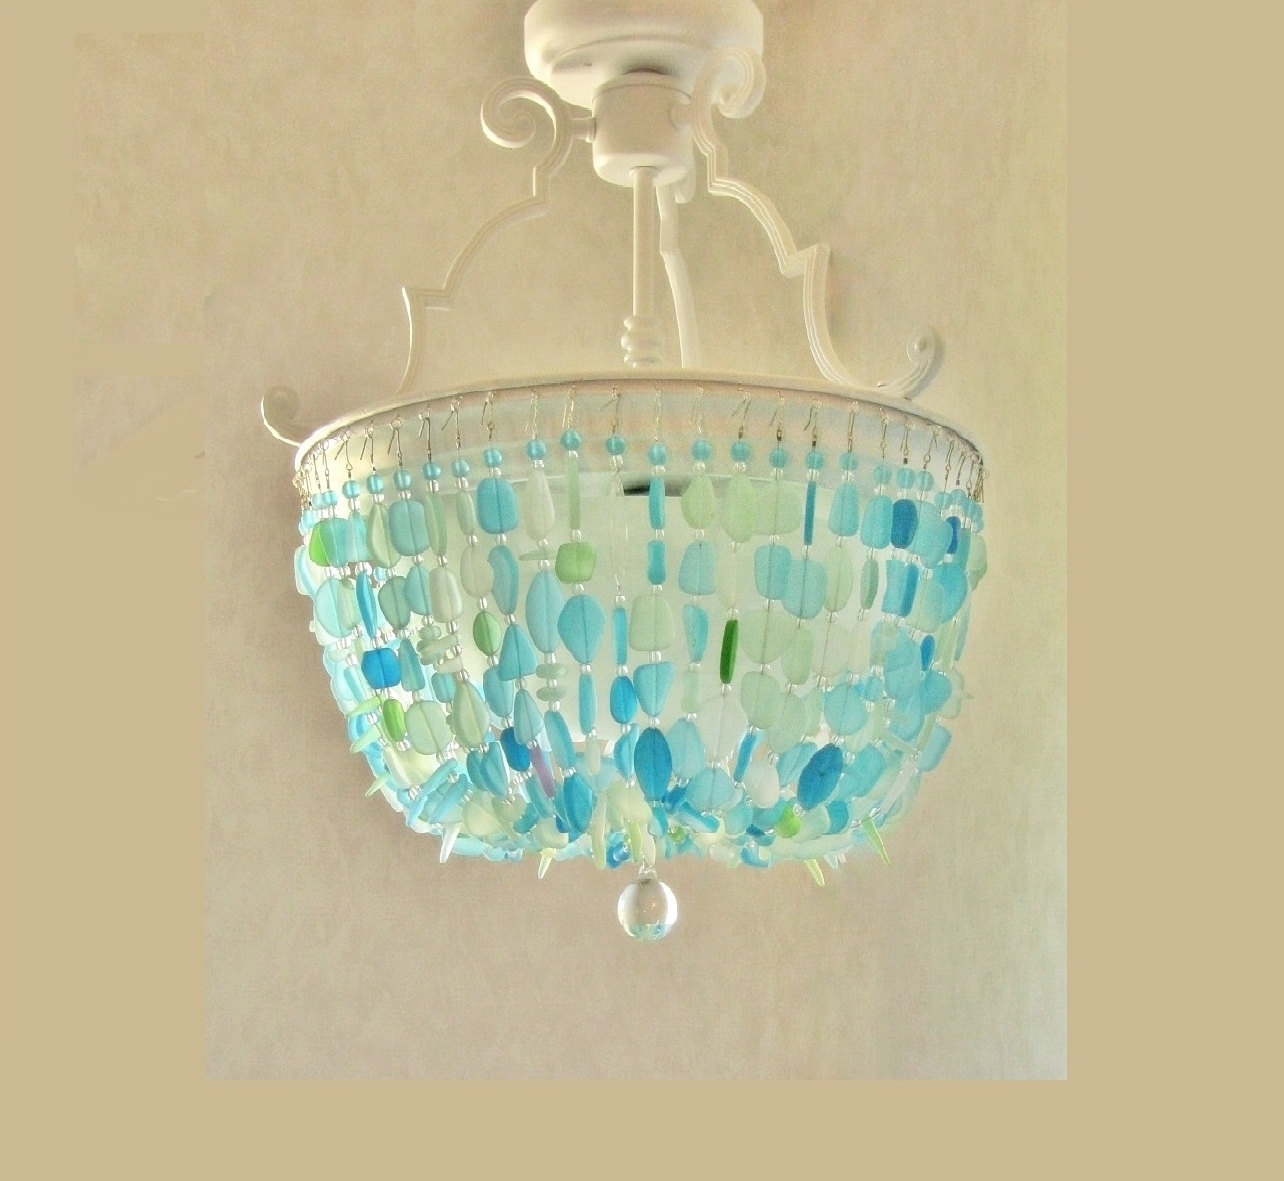 Sea Glass Chandelier Lighting Fixture Beach Glass Ceiling In Turquoise Chandelier Lights (View 23 of 25)